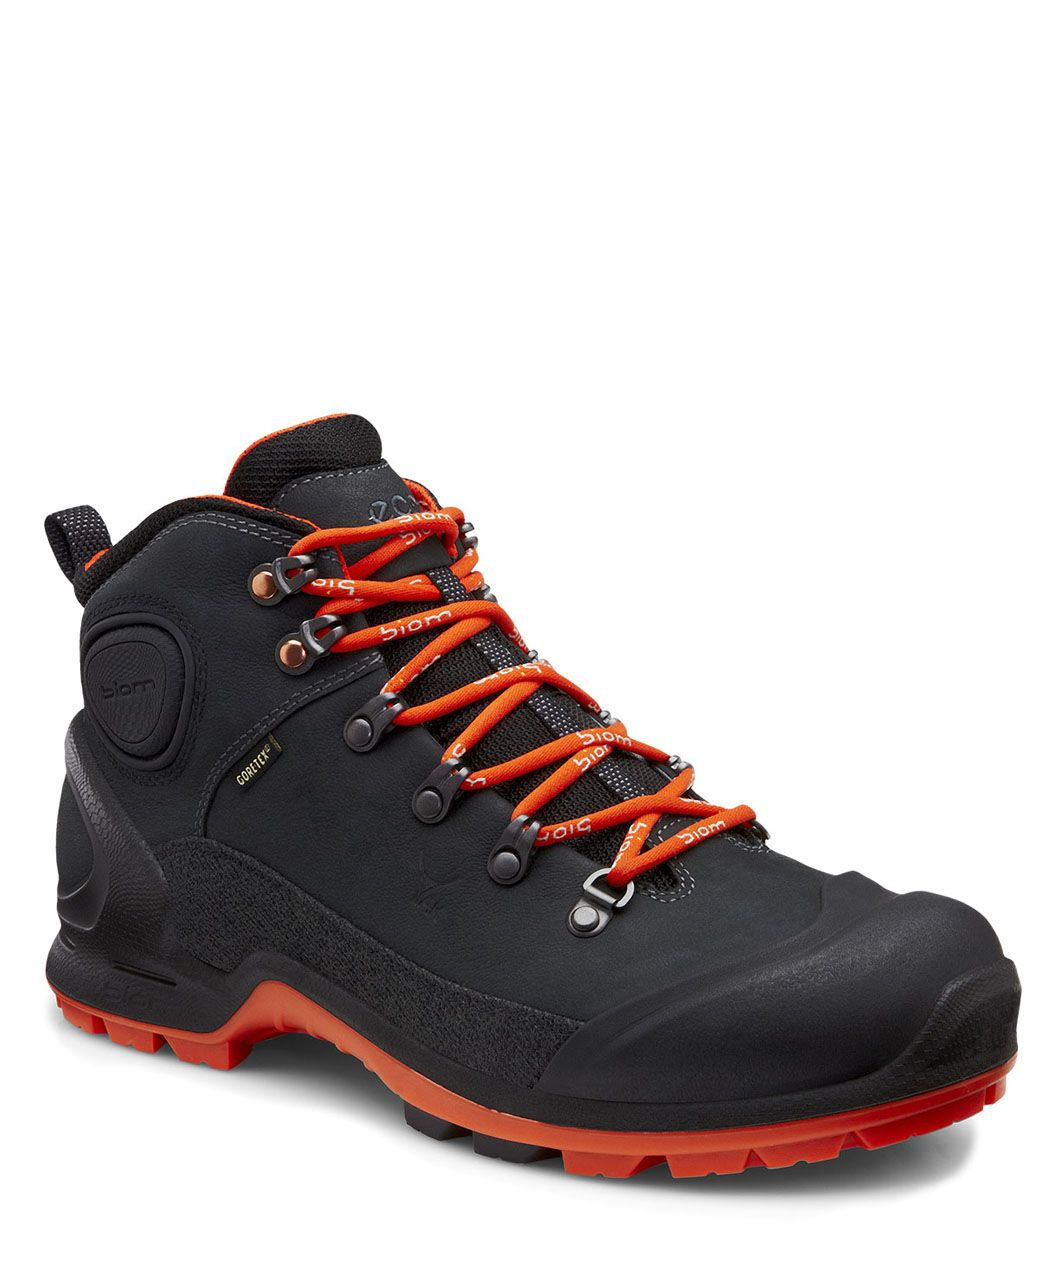 Mens Biom Akka Plus Gtx Men S Hiking Boots Ecco Usa